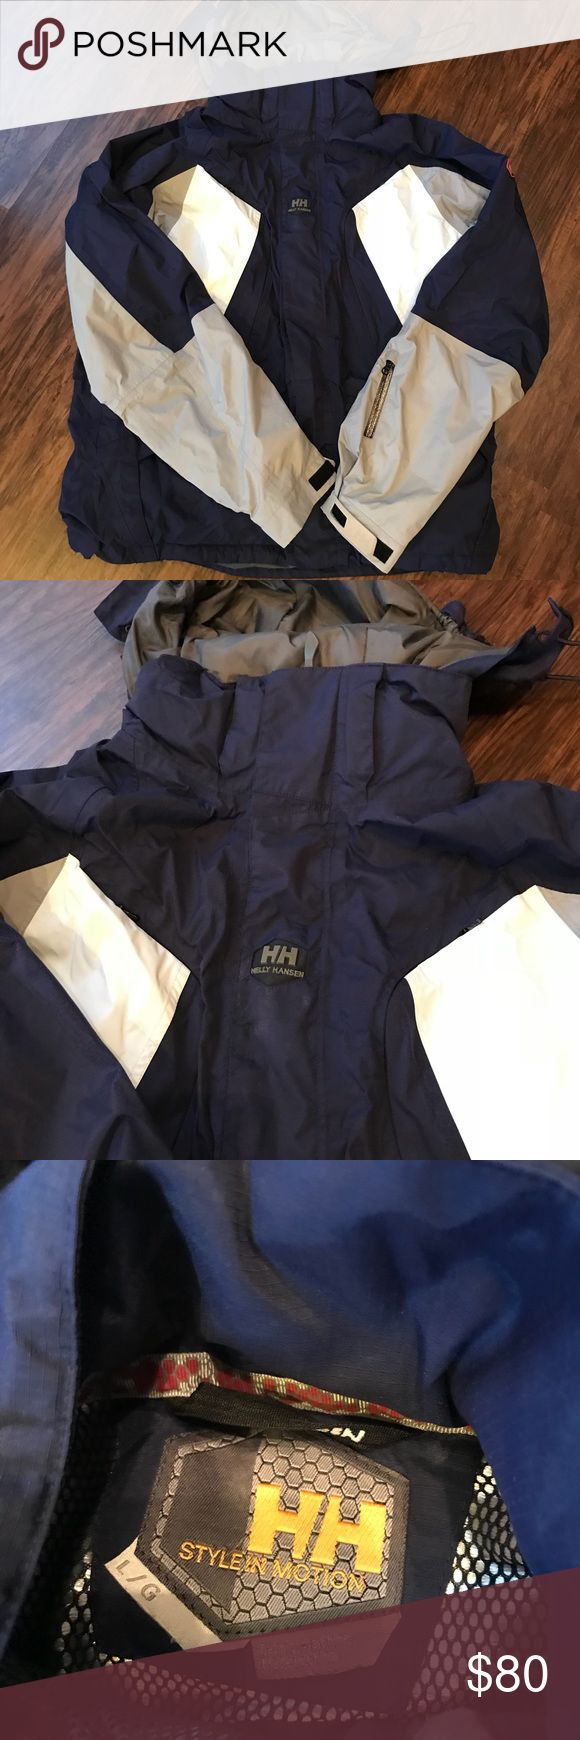 Helly Hansen ski jacket Helly Hansen ski jacket. Thermal foil and Mesh lined, waterproof and breathable with hood. Very good used condition. Helly Hansen Jackets & Coats Ski & Snowboard